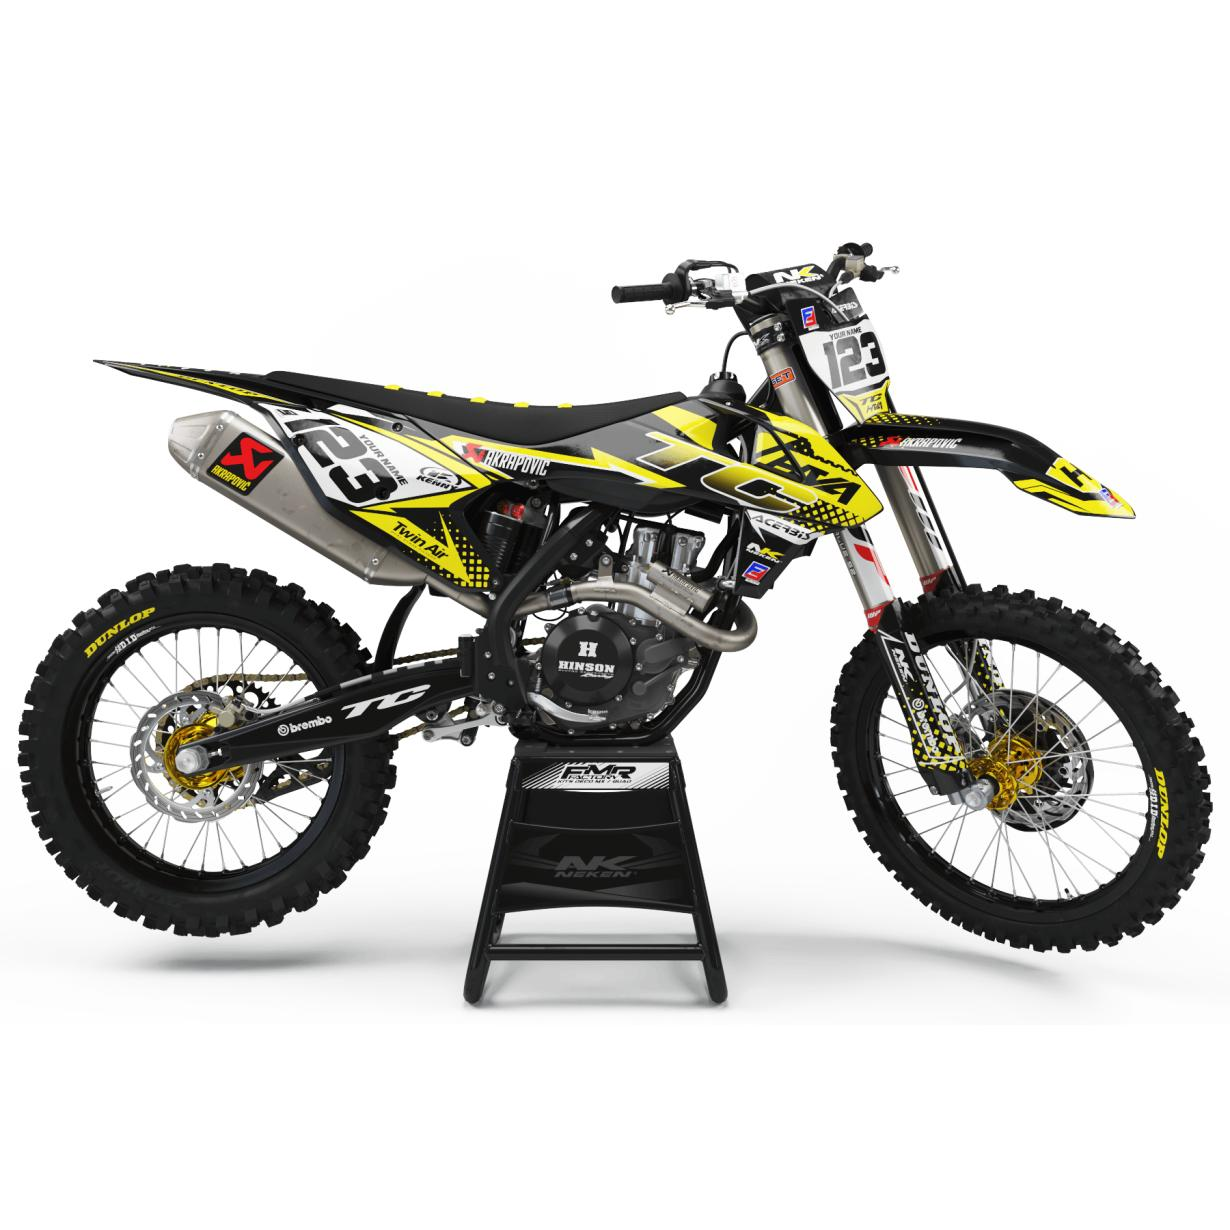 KIT DECO PERSO Husqvarna FACTORY ENERGY jaune